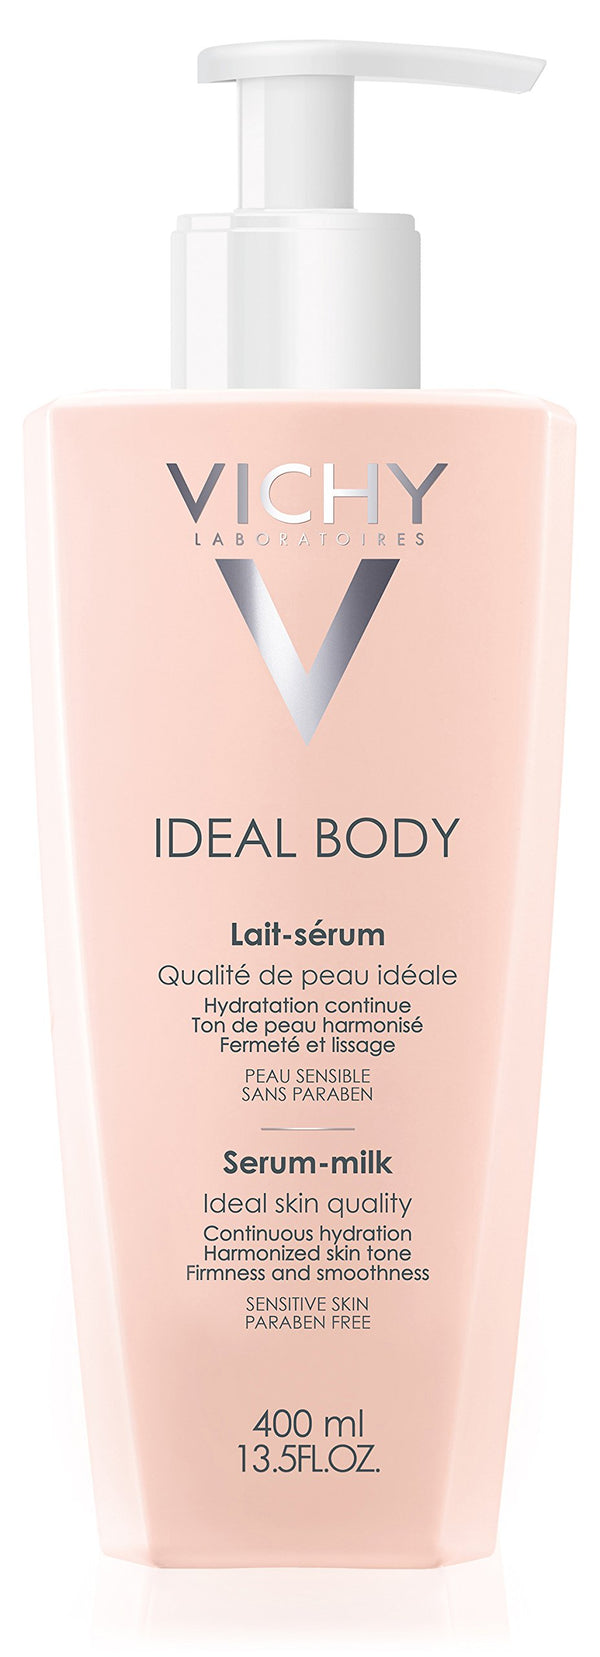 Vichy Ideal Body Lotion Serum-Milk, 13.5 Fl Oz